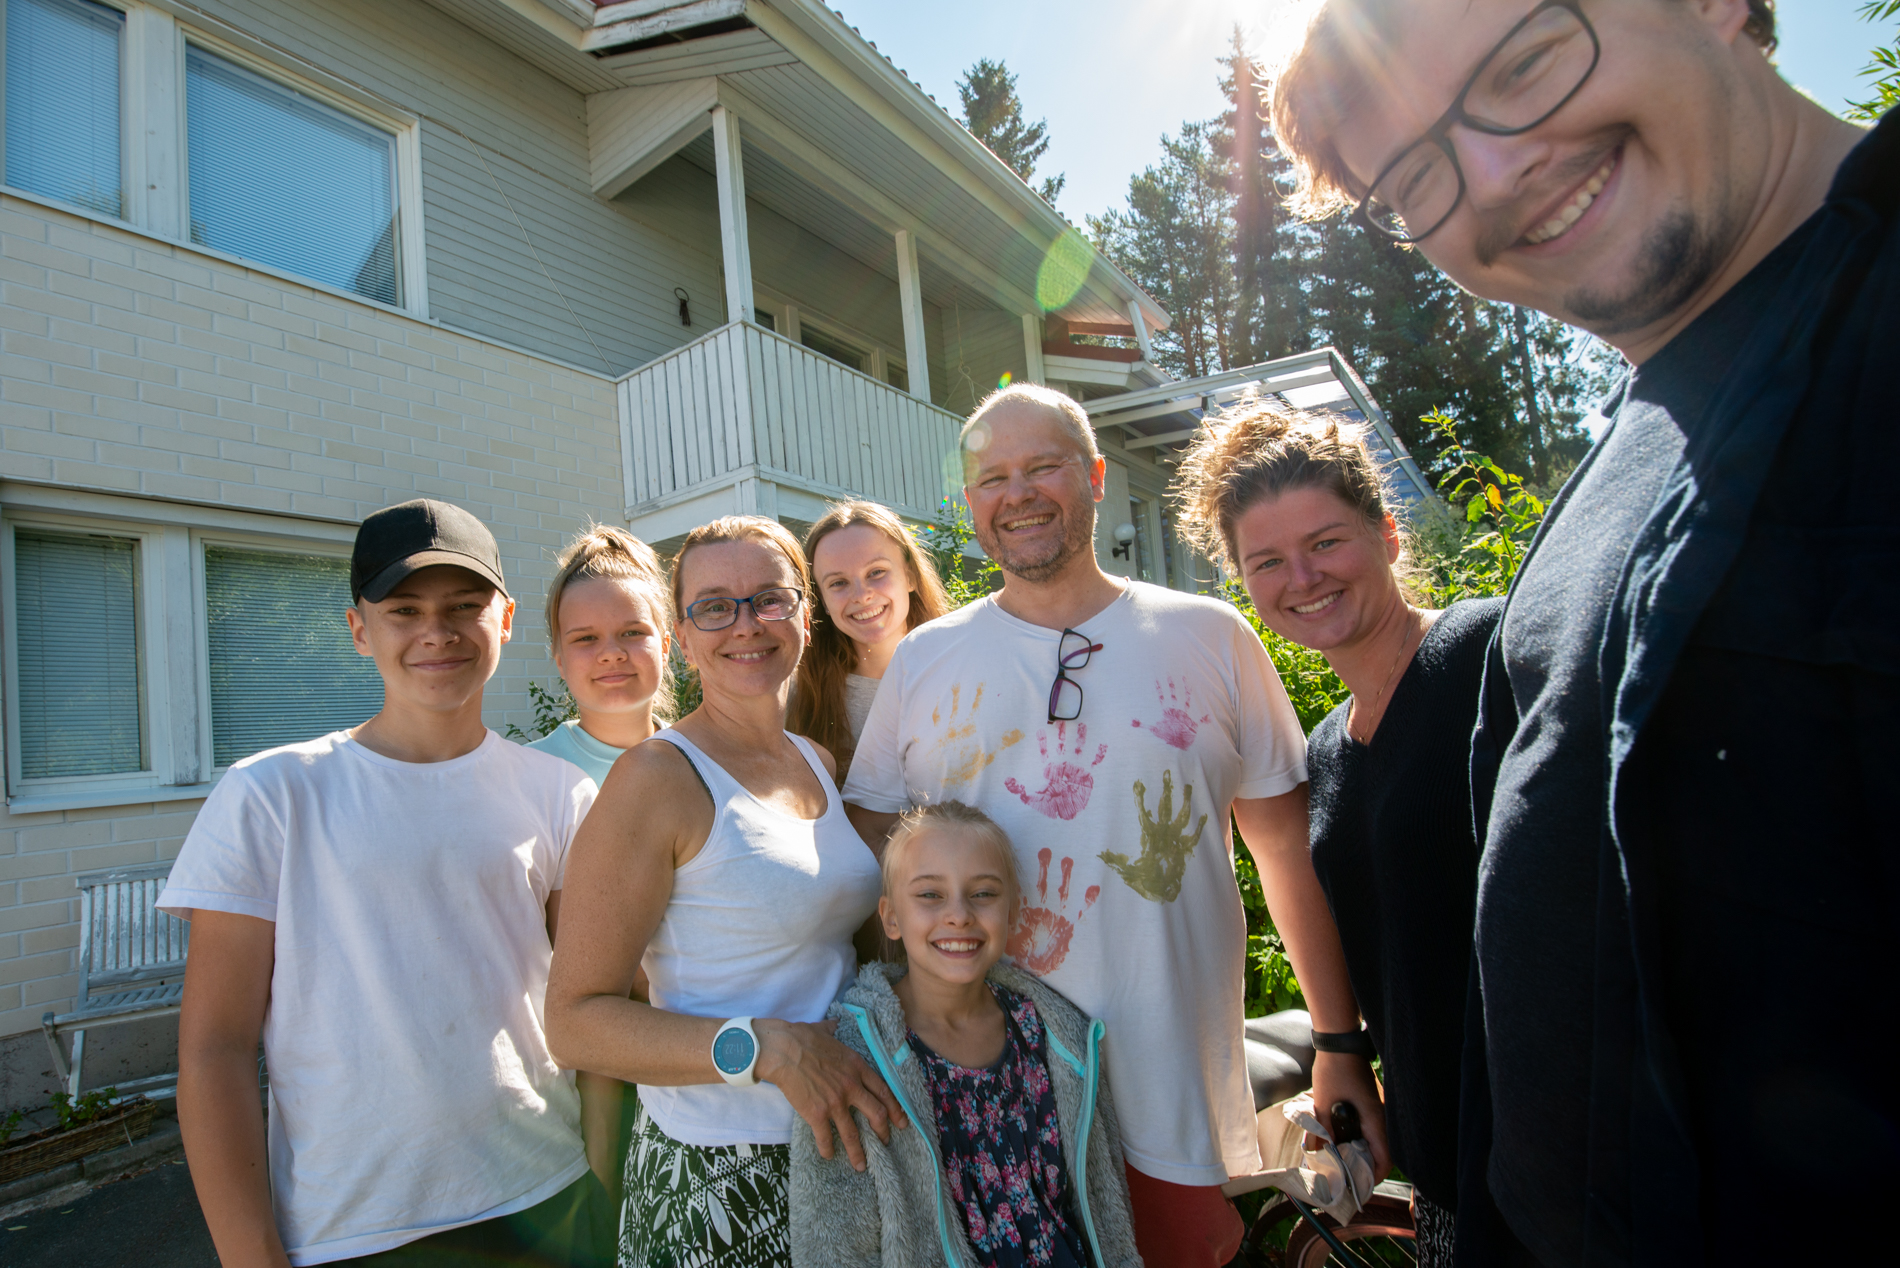 Ellis&Me with the first family in Finland that took us in their home.